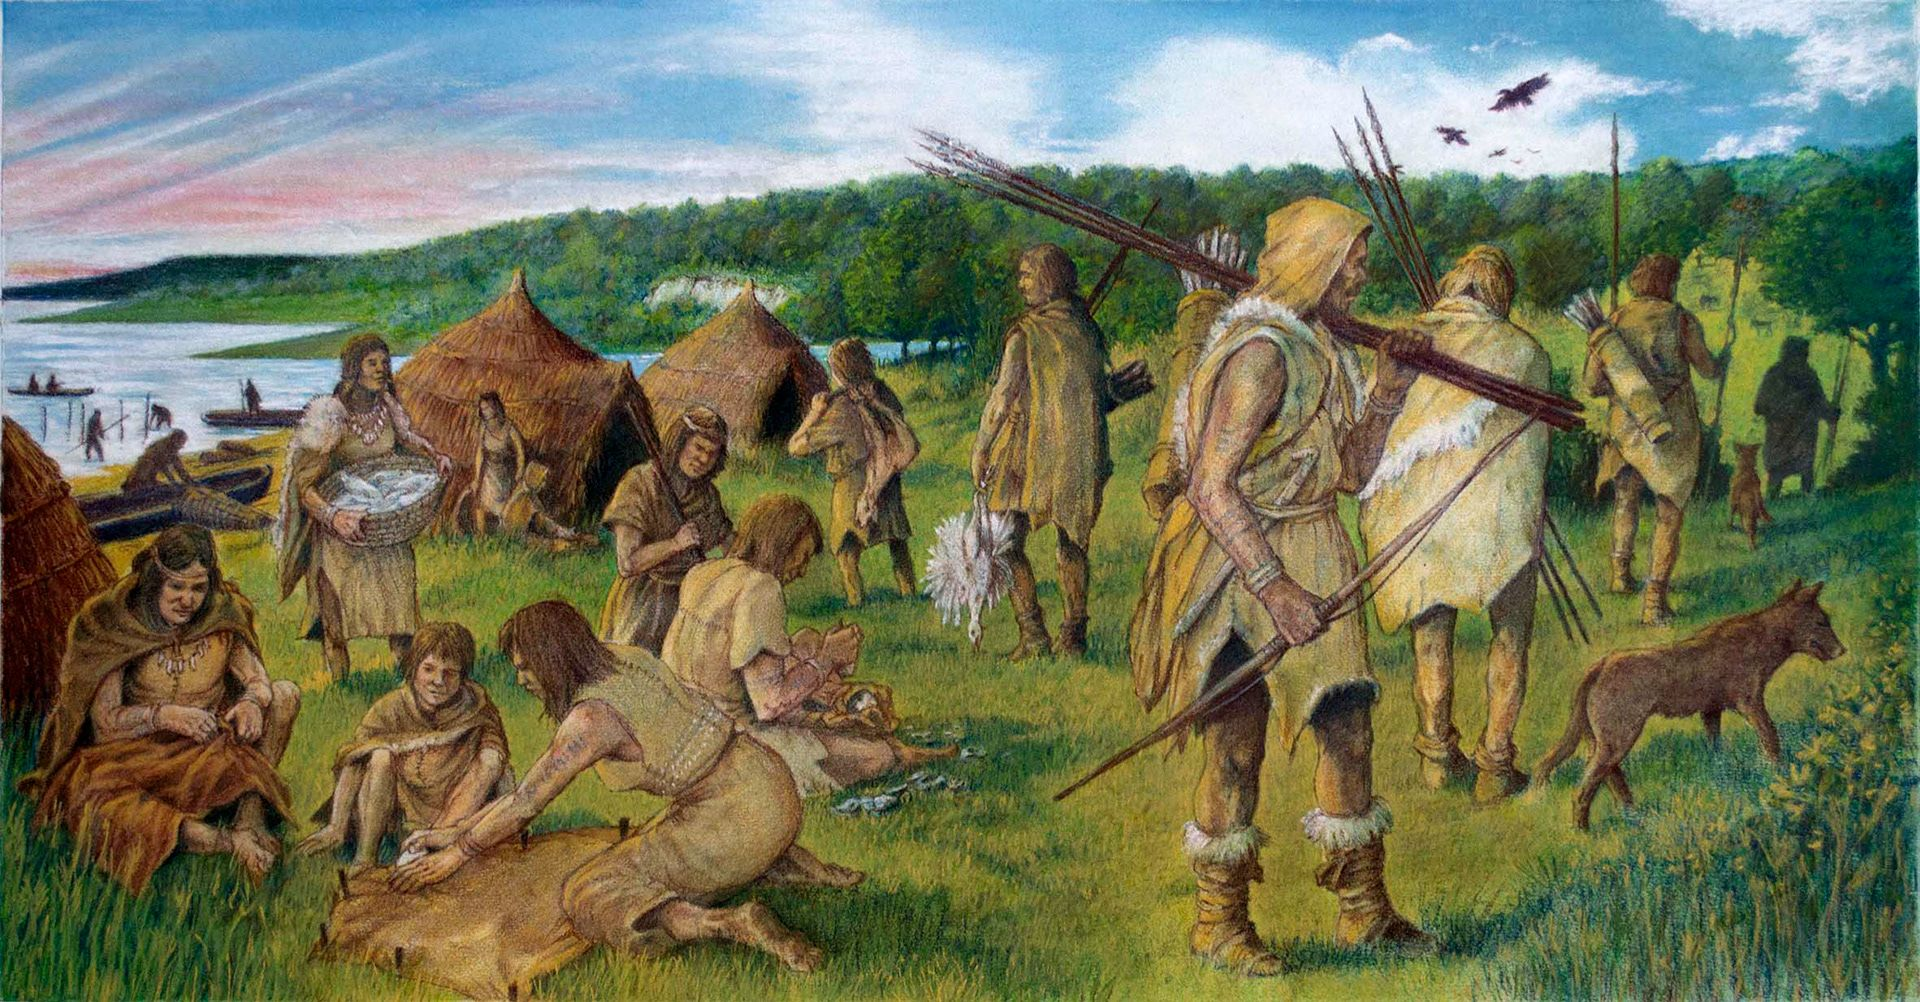 Mesolithic Hunter Gatherer Community Somewhere Along The South Coast Of Susaround 7 000 Bce